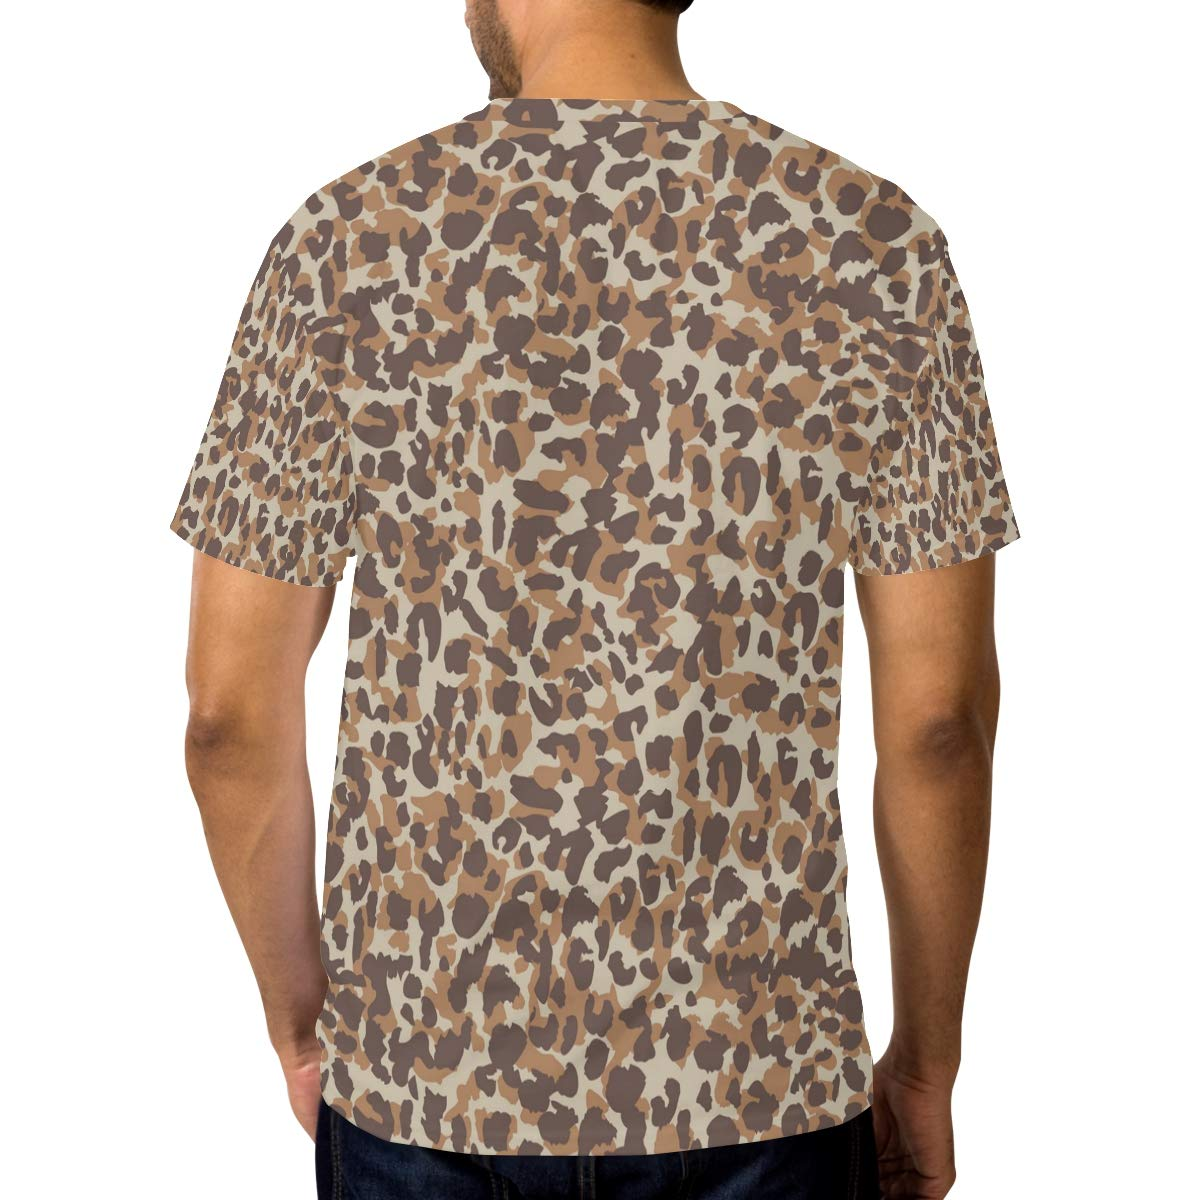 Horatiood Huberyyd Brown Leopard Print Fabric Mens T Shirts Graphic Funny Body Print Short T-Shirt Unisex Pullover Blouse